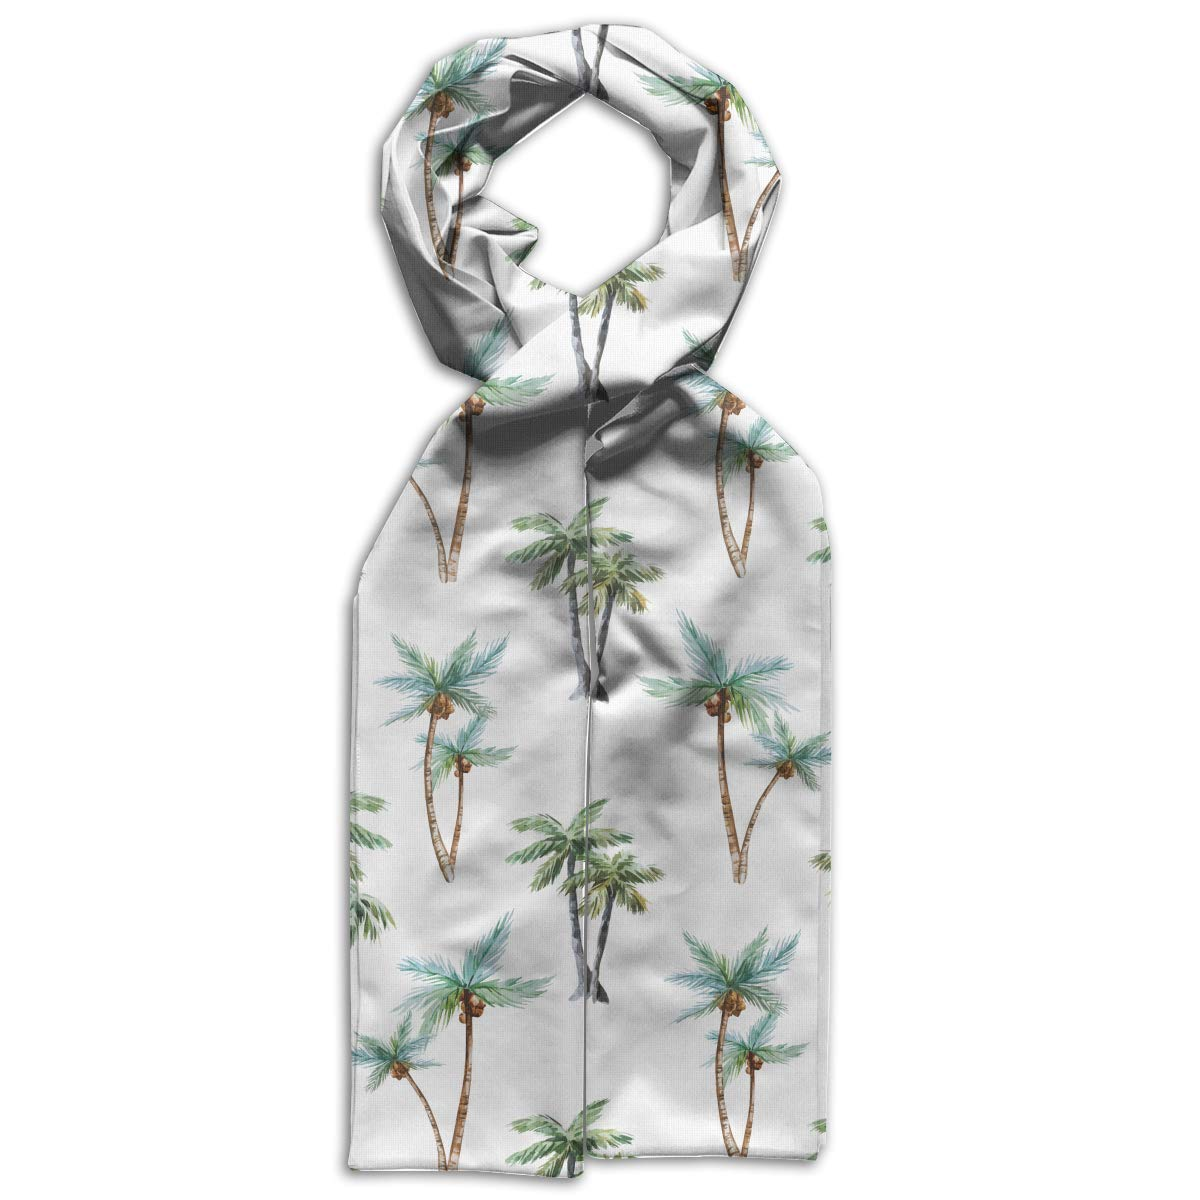 Coconut Tree Kids Printed Scarf Cute Winter Infinity Scarf Warmer Travel Scarf For Kids Perfect Birthday Gift